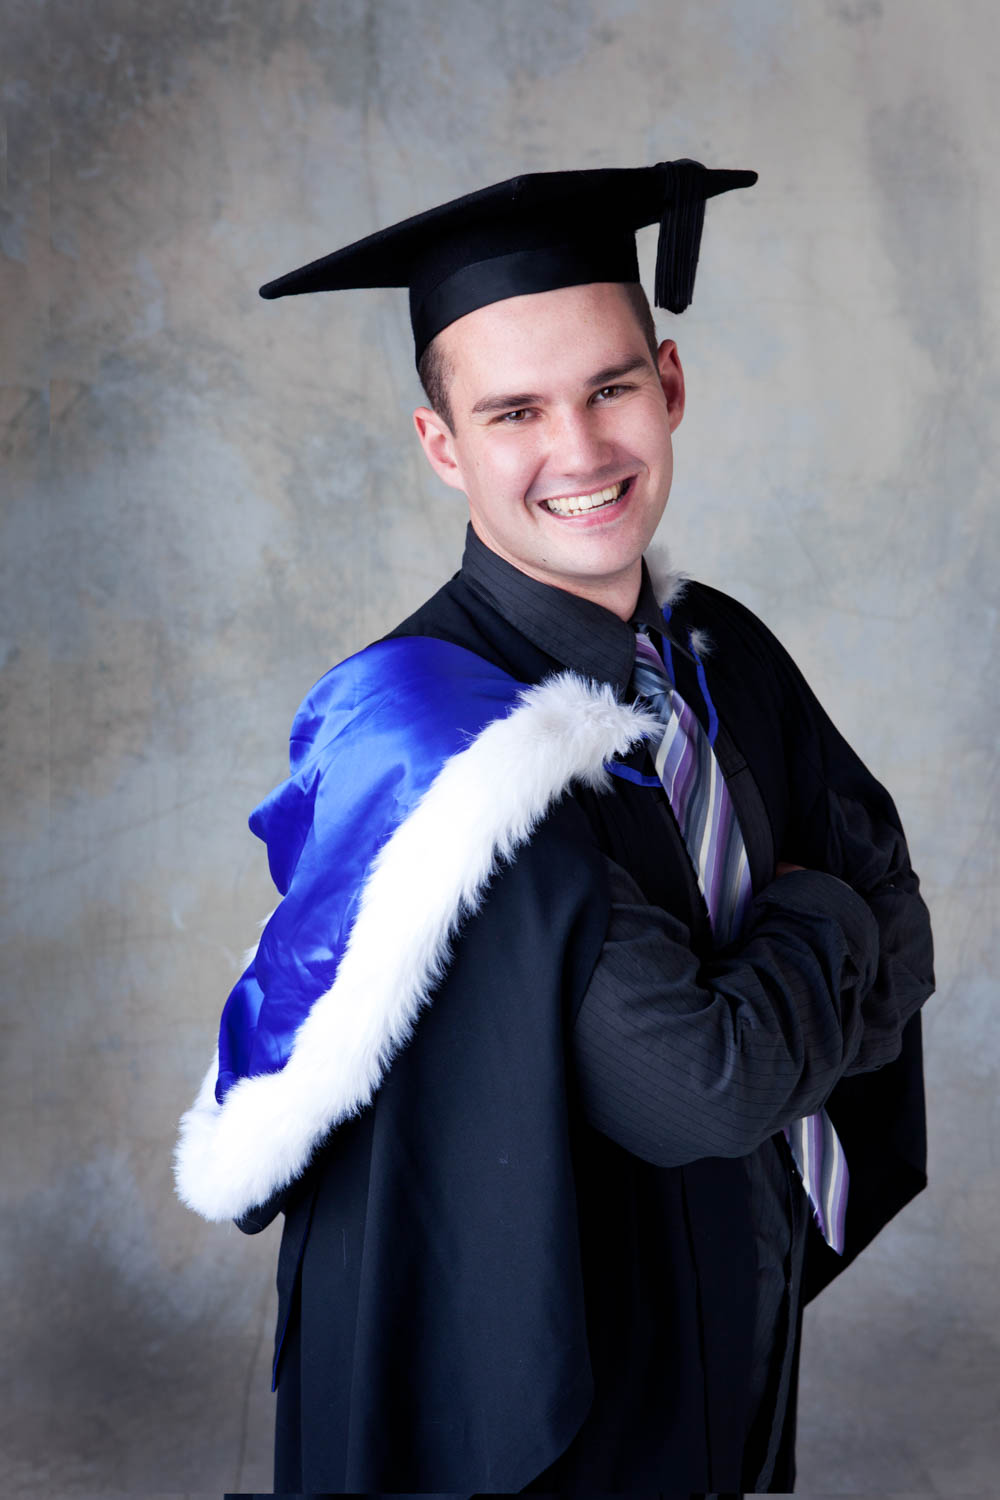 Graduation_Photographer_Auckland_17873_7013.jpg